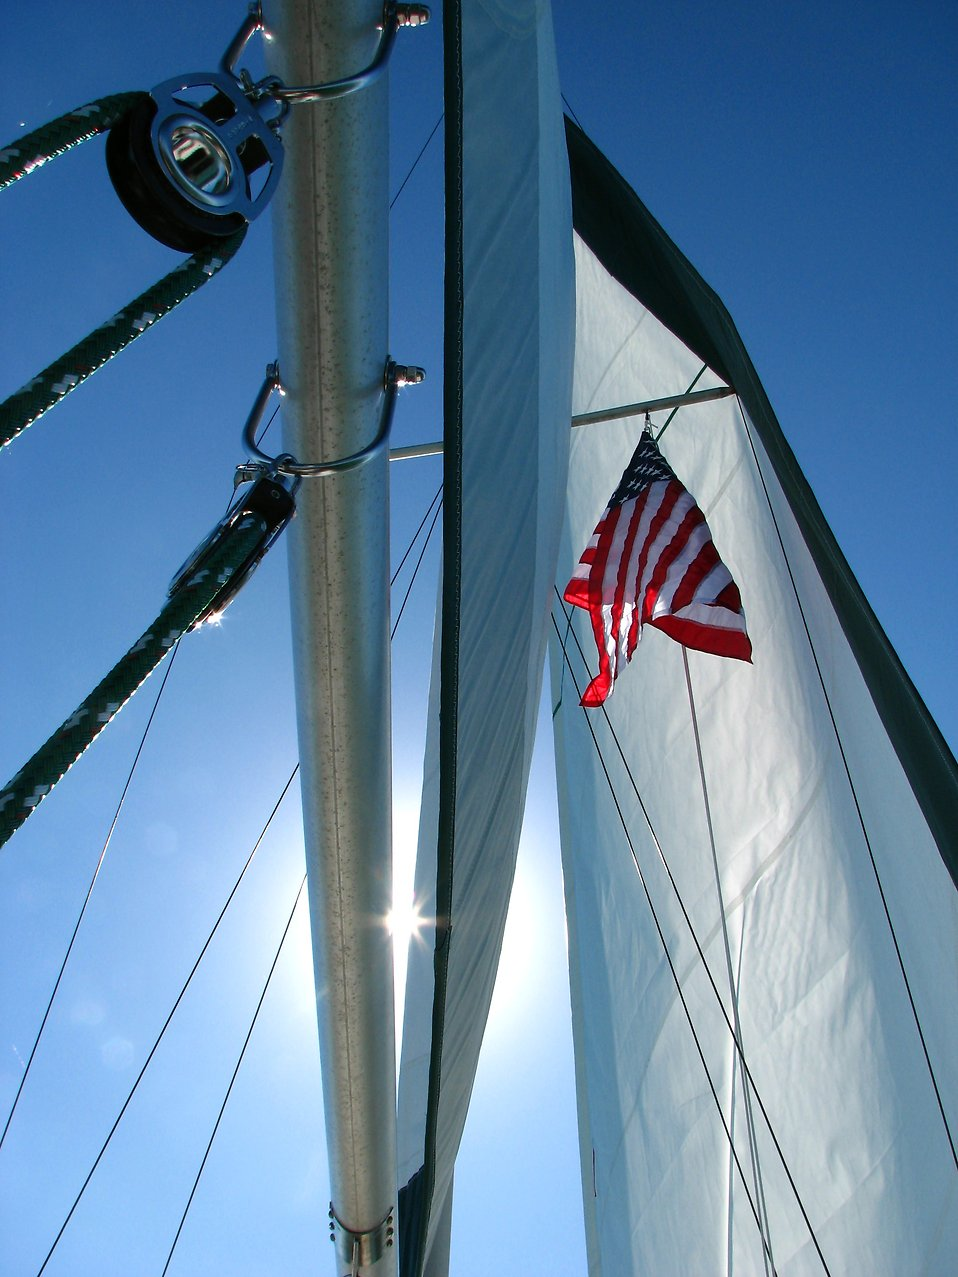 An American flag and the sail of a sailboat : Free Stock Photo